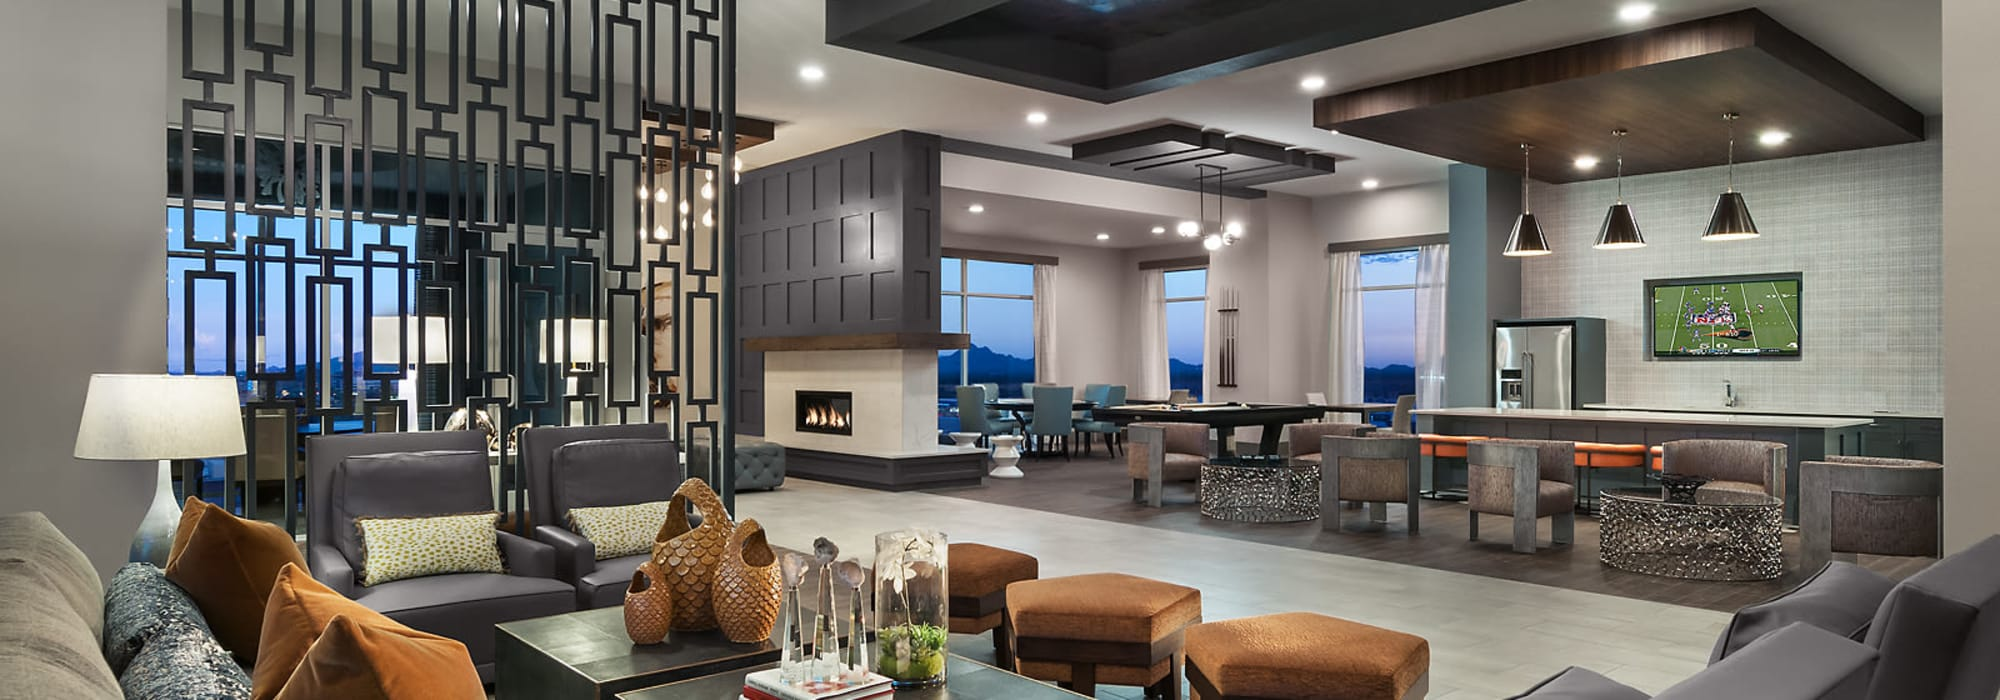 High end club room at The Halsten at Chauncey Lane in Scottsdale, Arizona